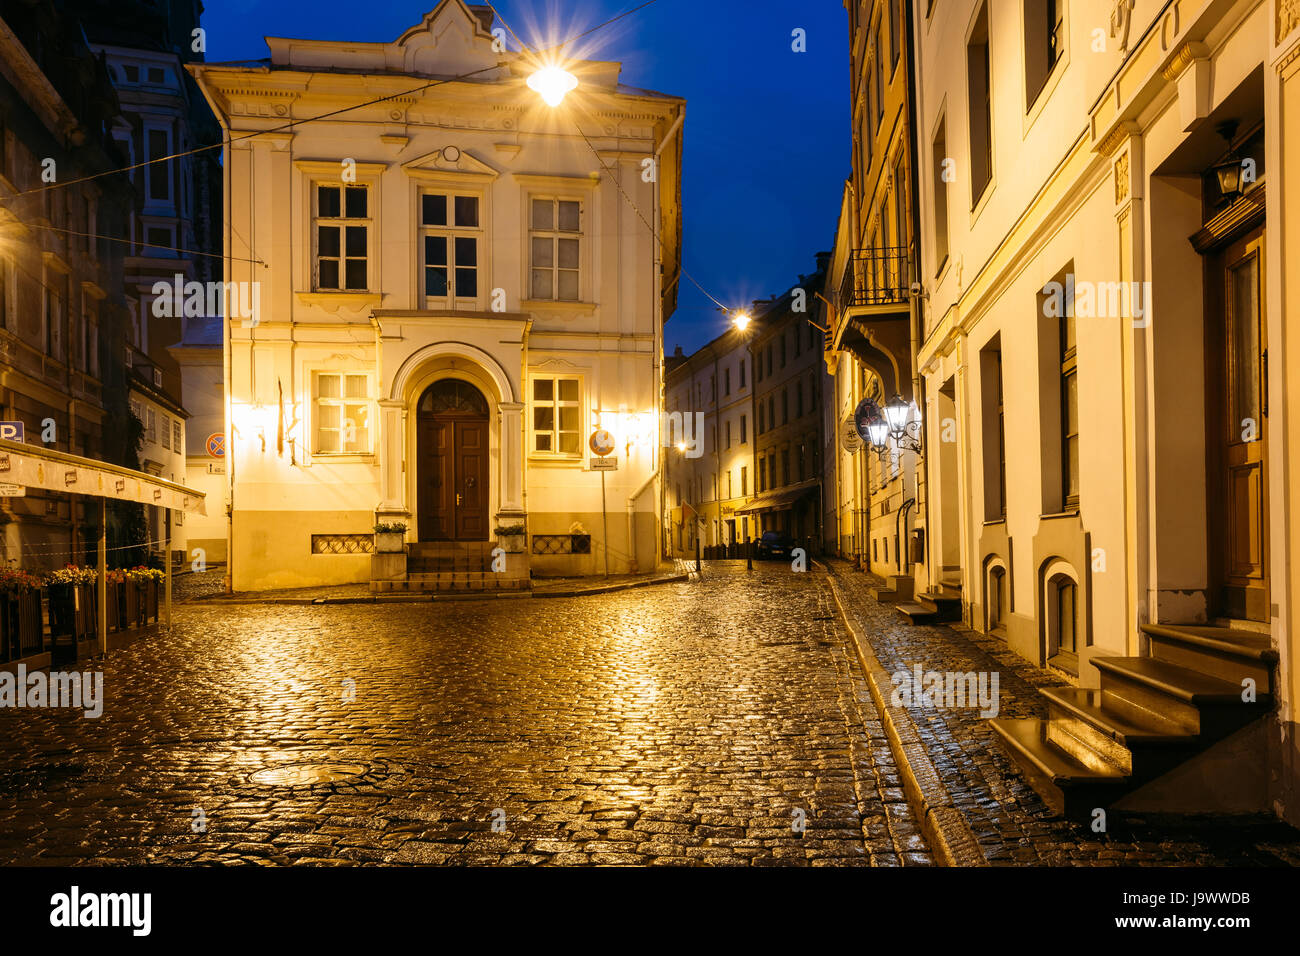 Riga, Latvia - July 3, 2016: Old Building At Intersection Of Maza Pils And Klostera Streets In Evening Or Night - Stock Image